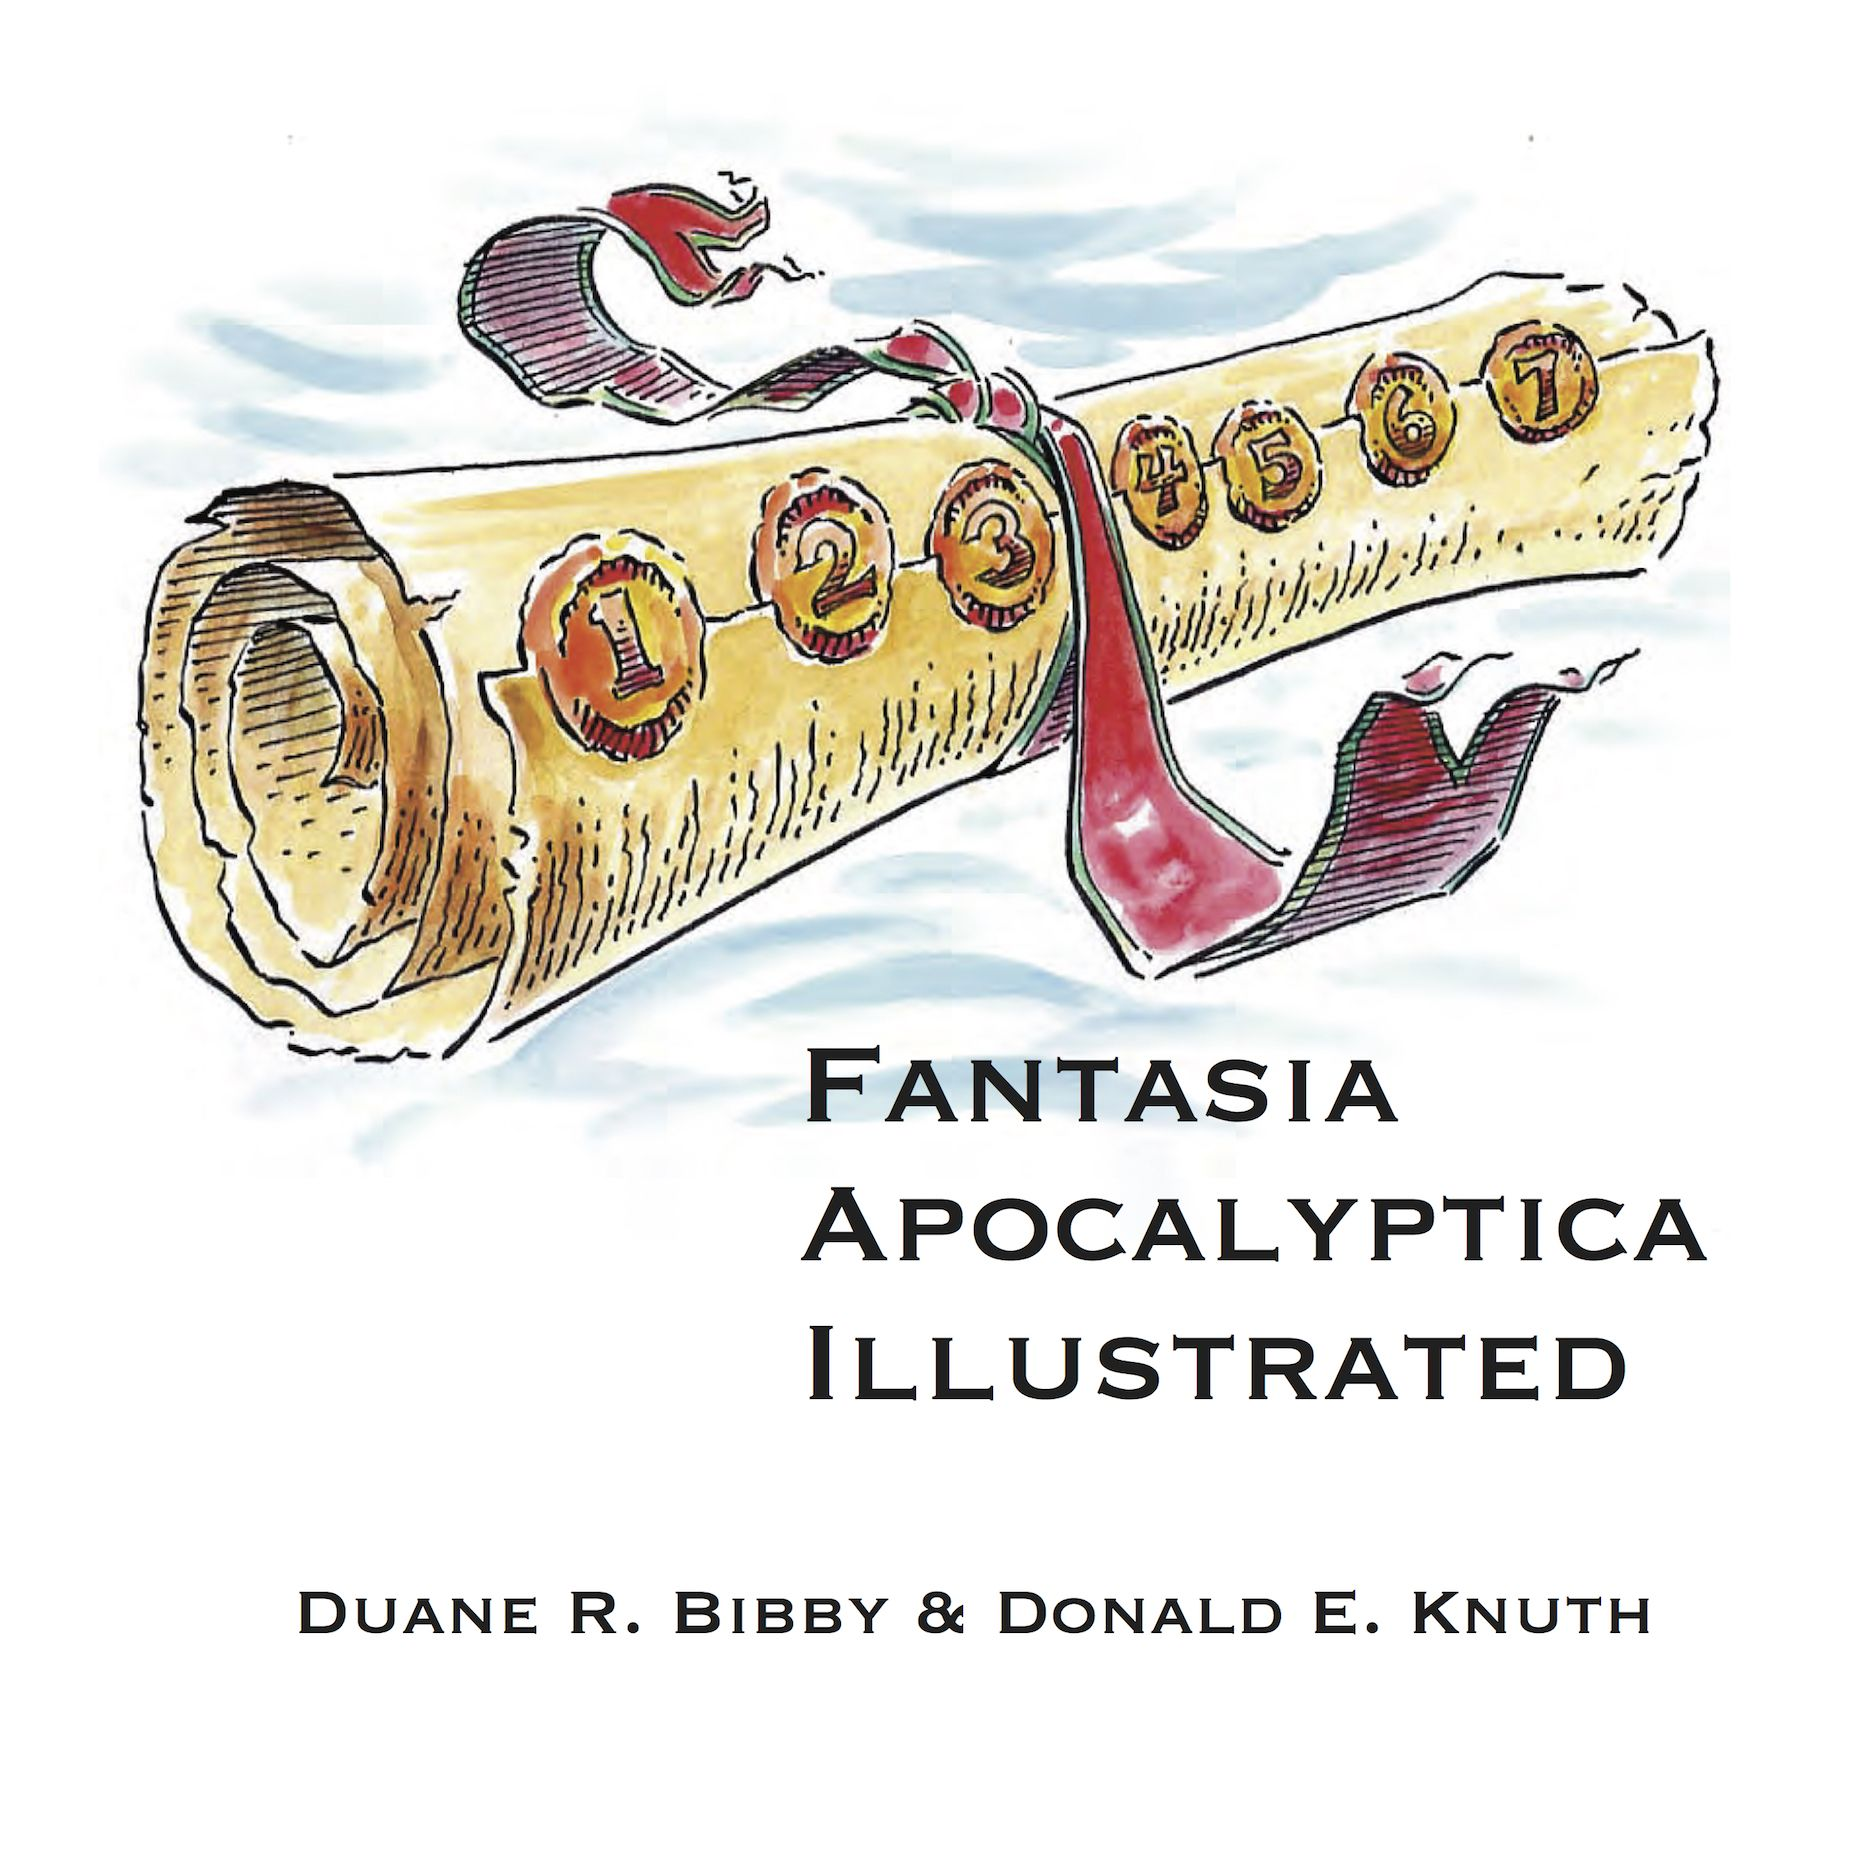 Fantasia Apocalyptica Illustrated